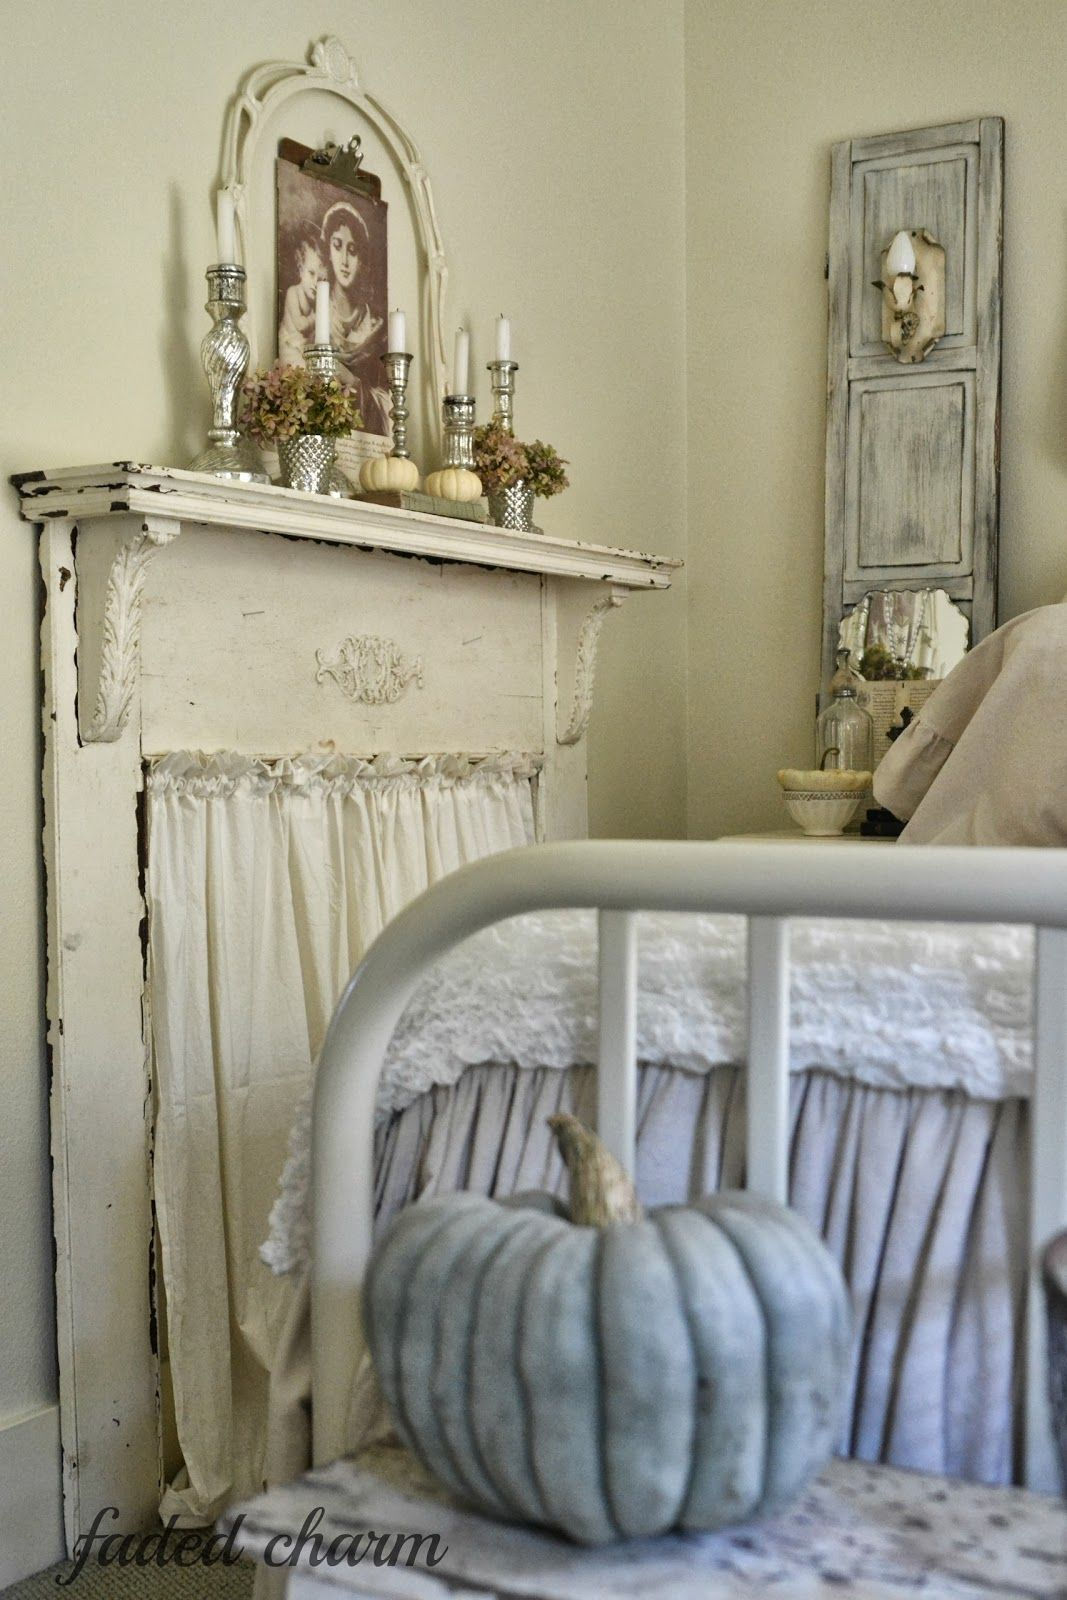 Shabby Chic The faux mantel adds so much personality.